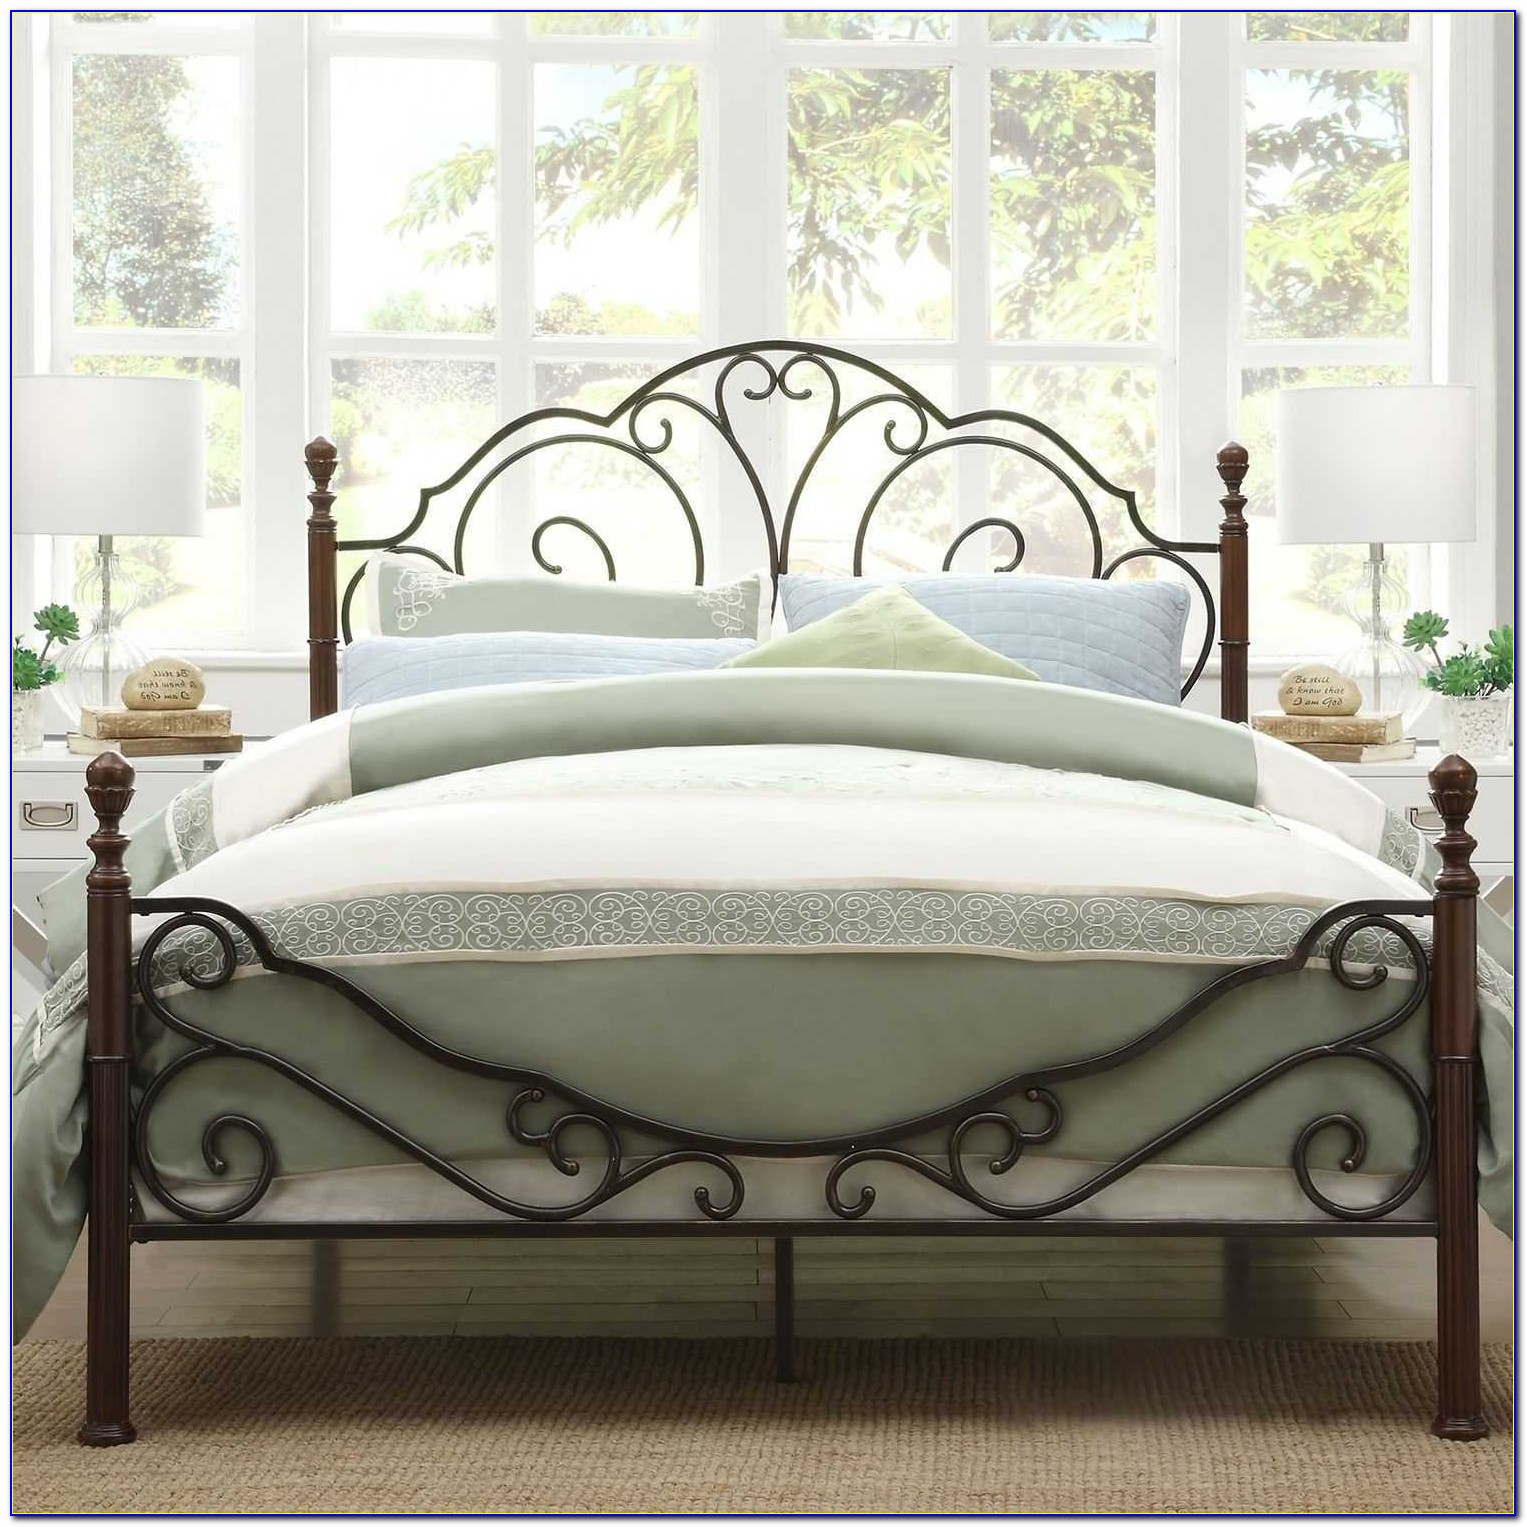 Queen Bed Rails For Headboard And Footboard